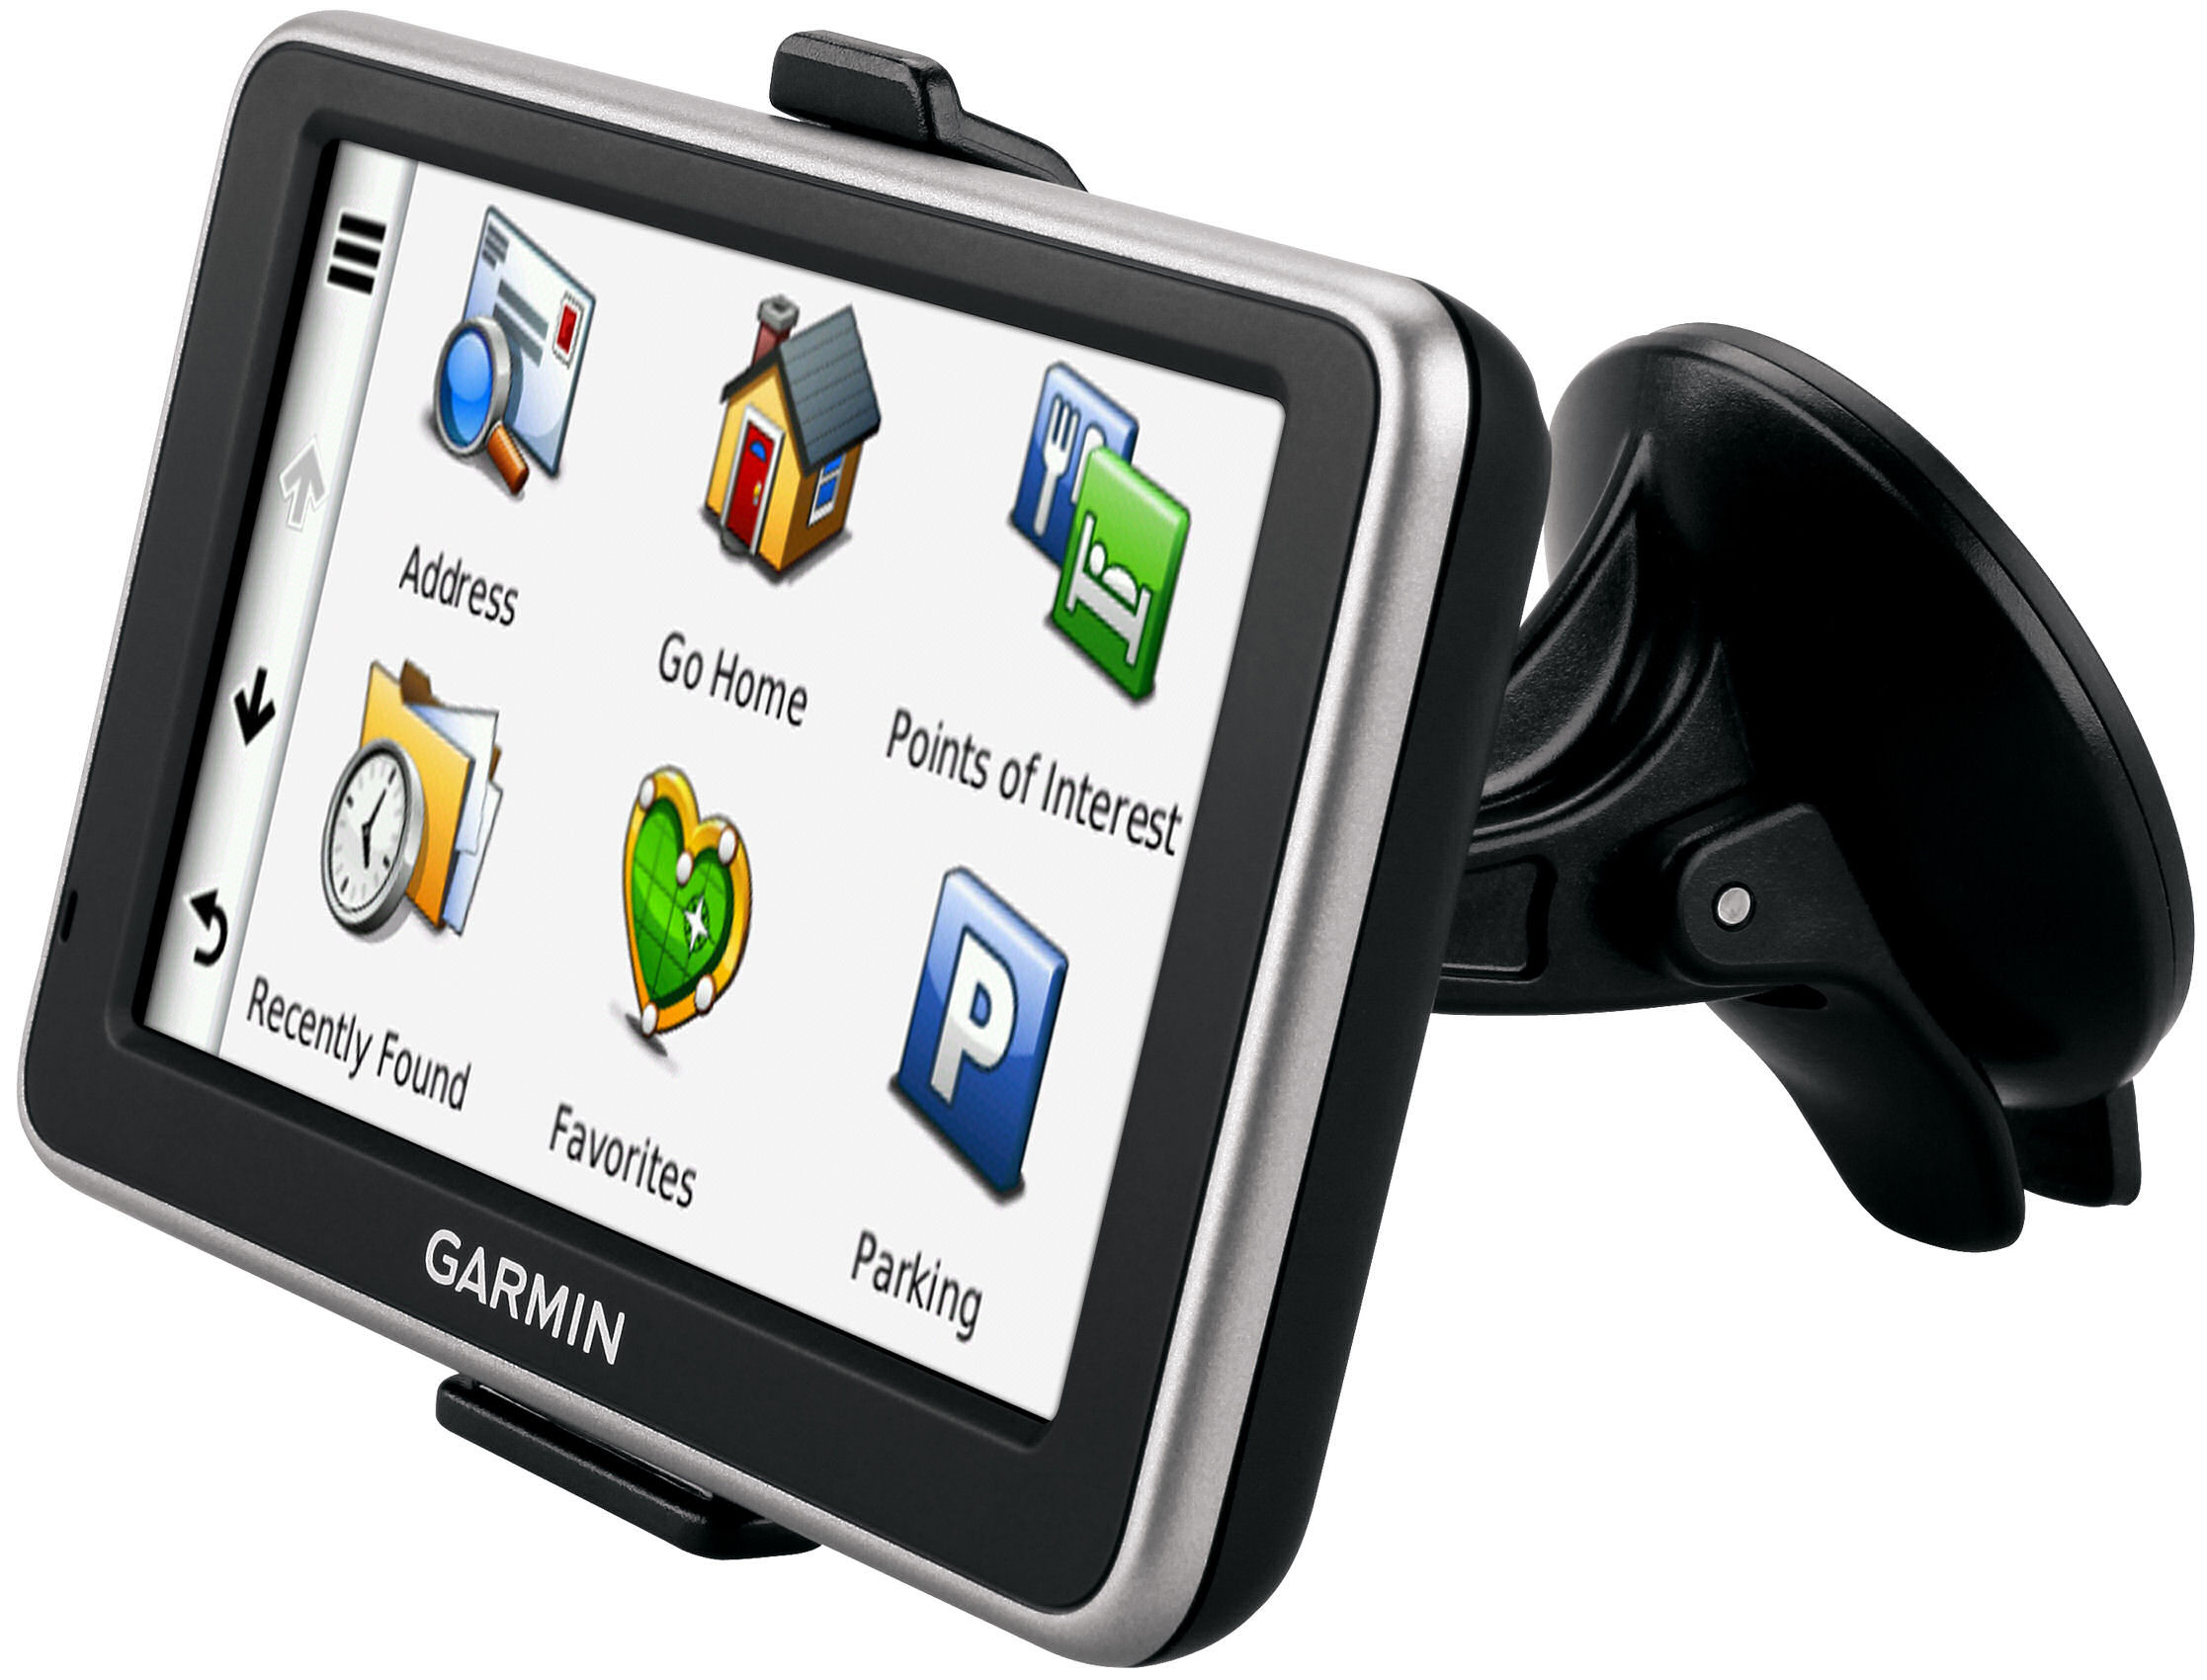 Garmin Nuvi 2340 West-Europa Smart Traffic